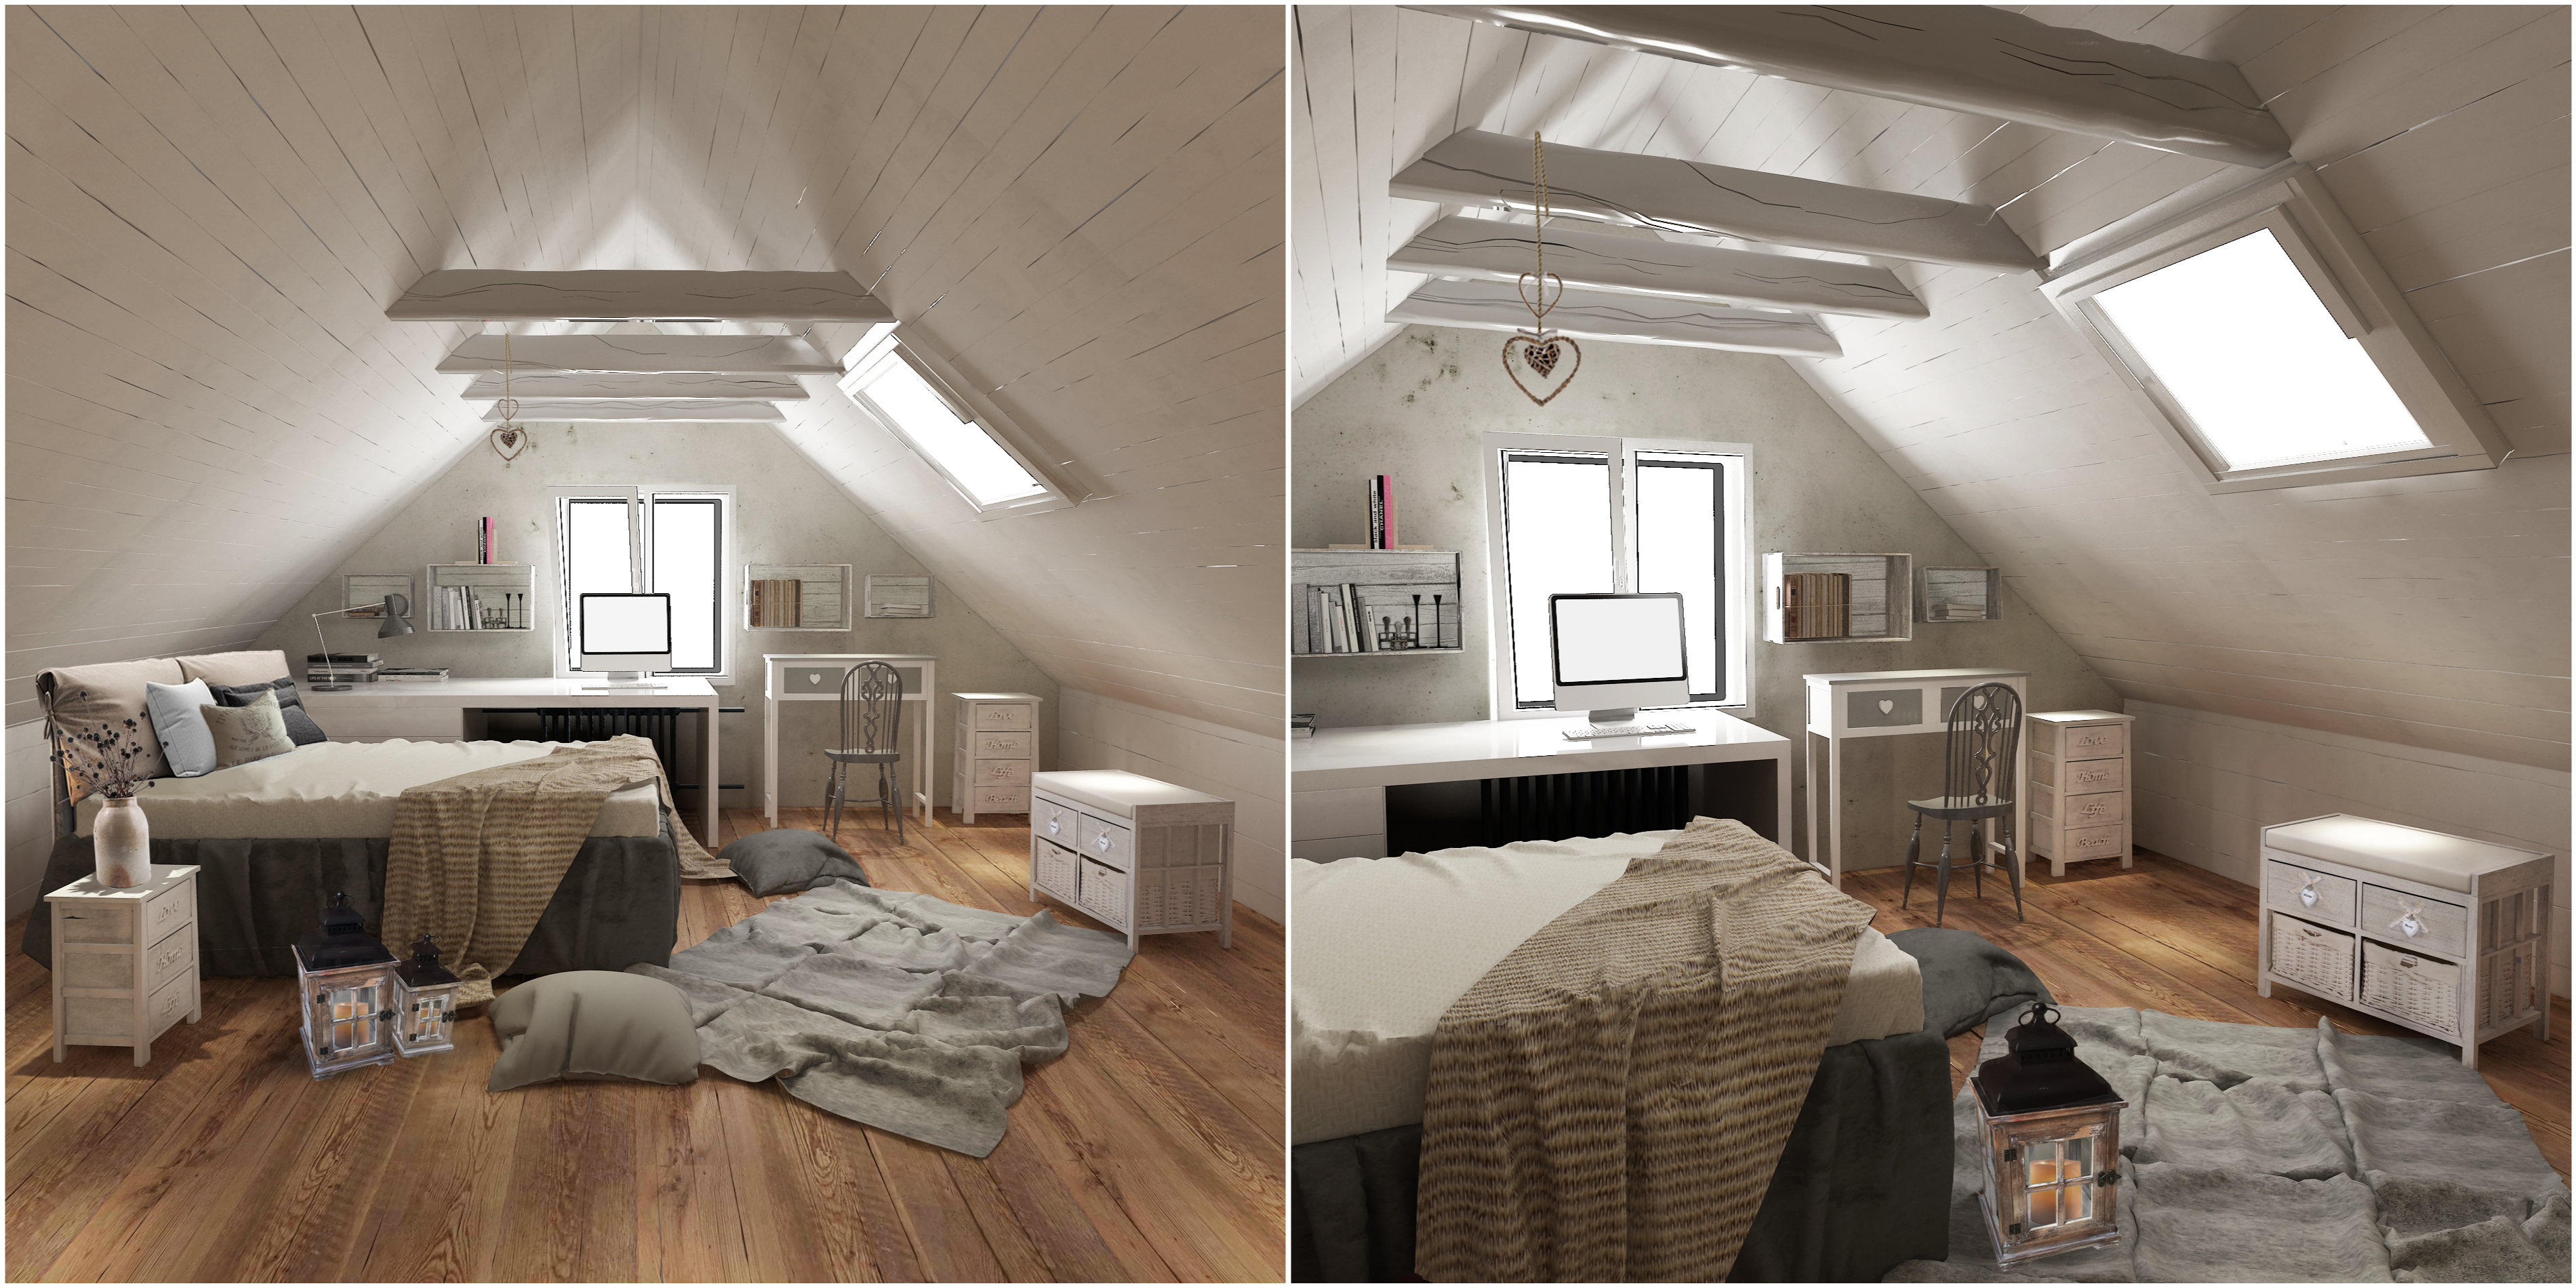 5 idee per arredare la camera da letto in stile shabby chic for Idee x arredare camera da letto